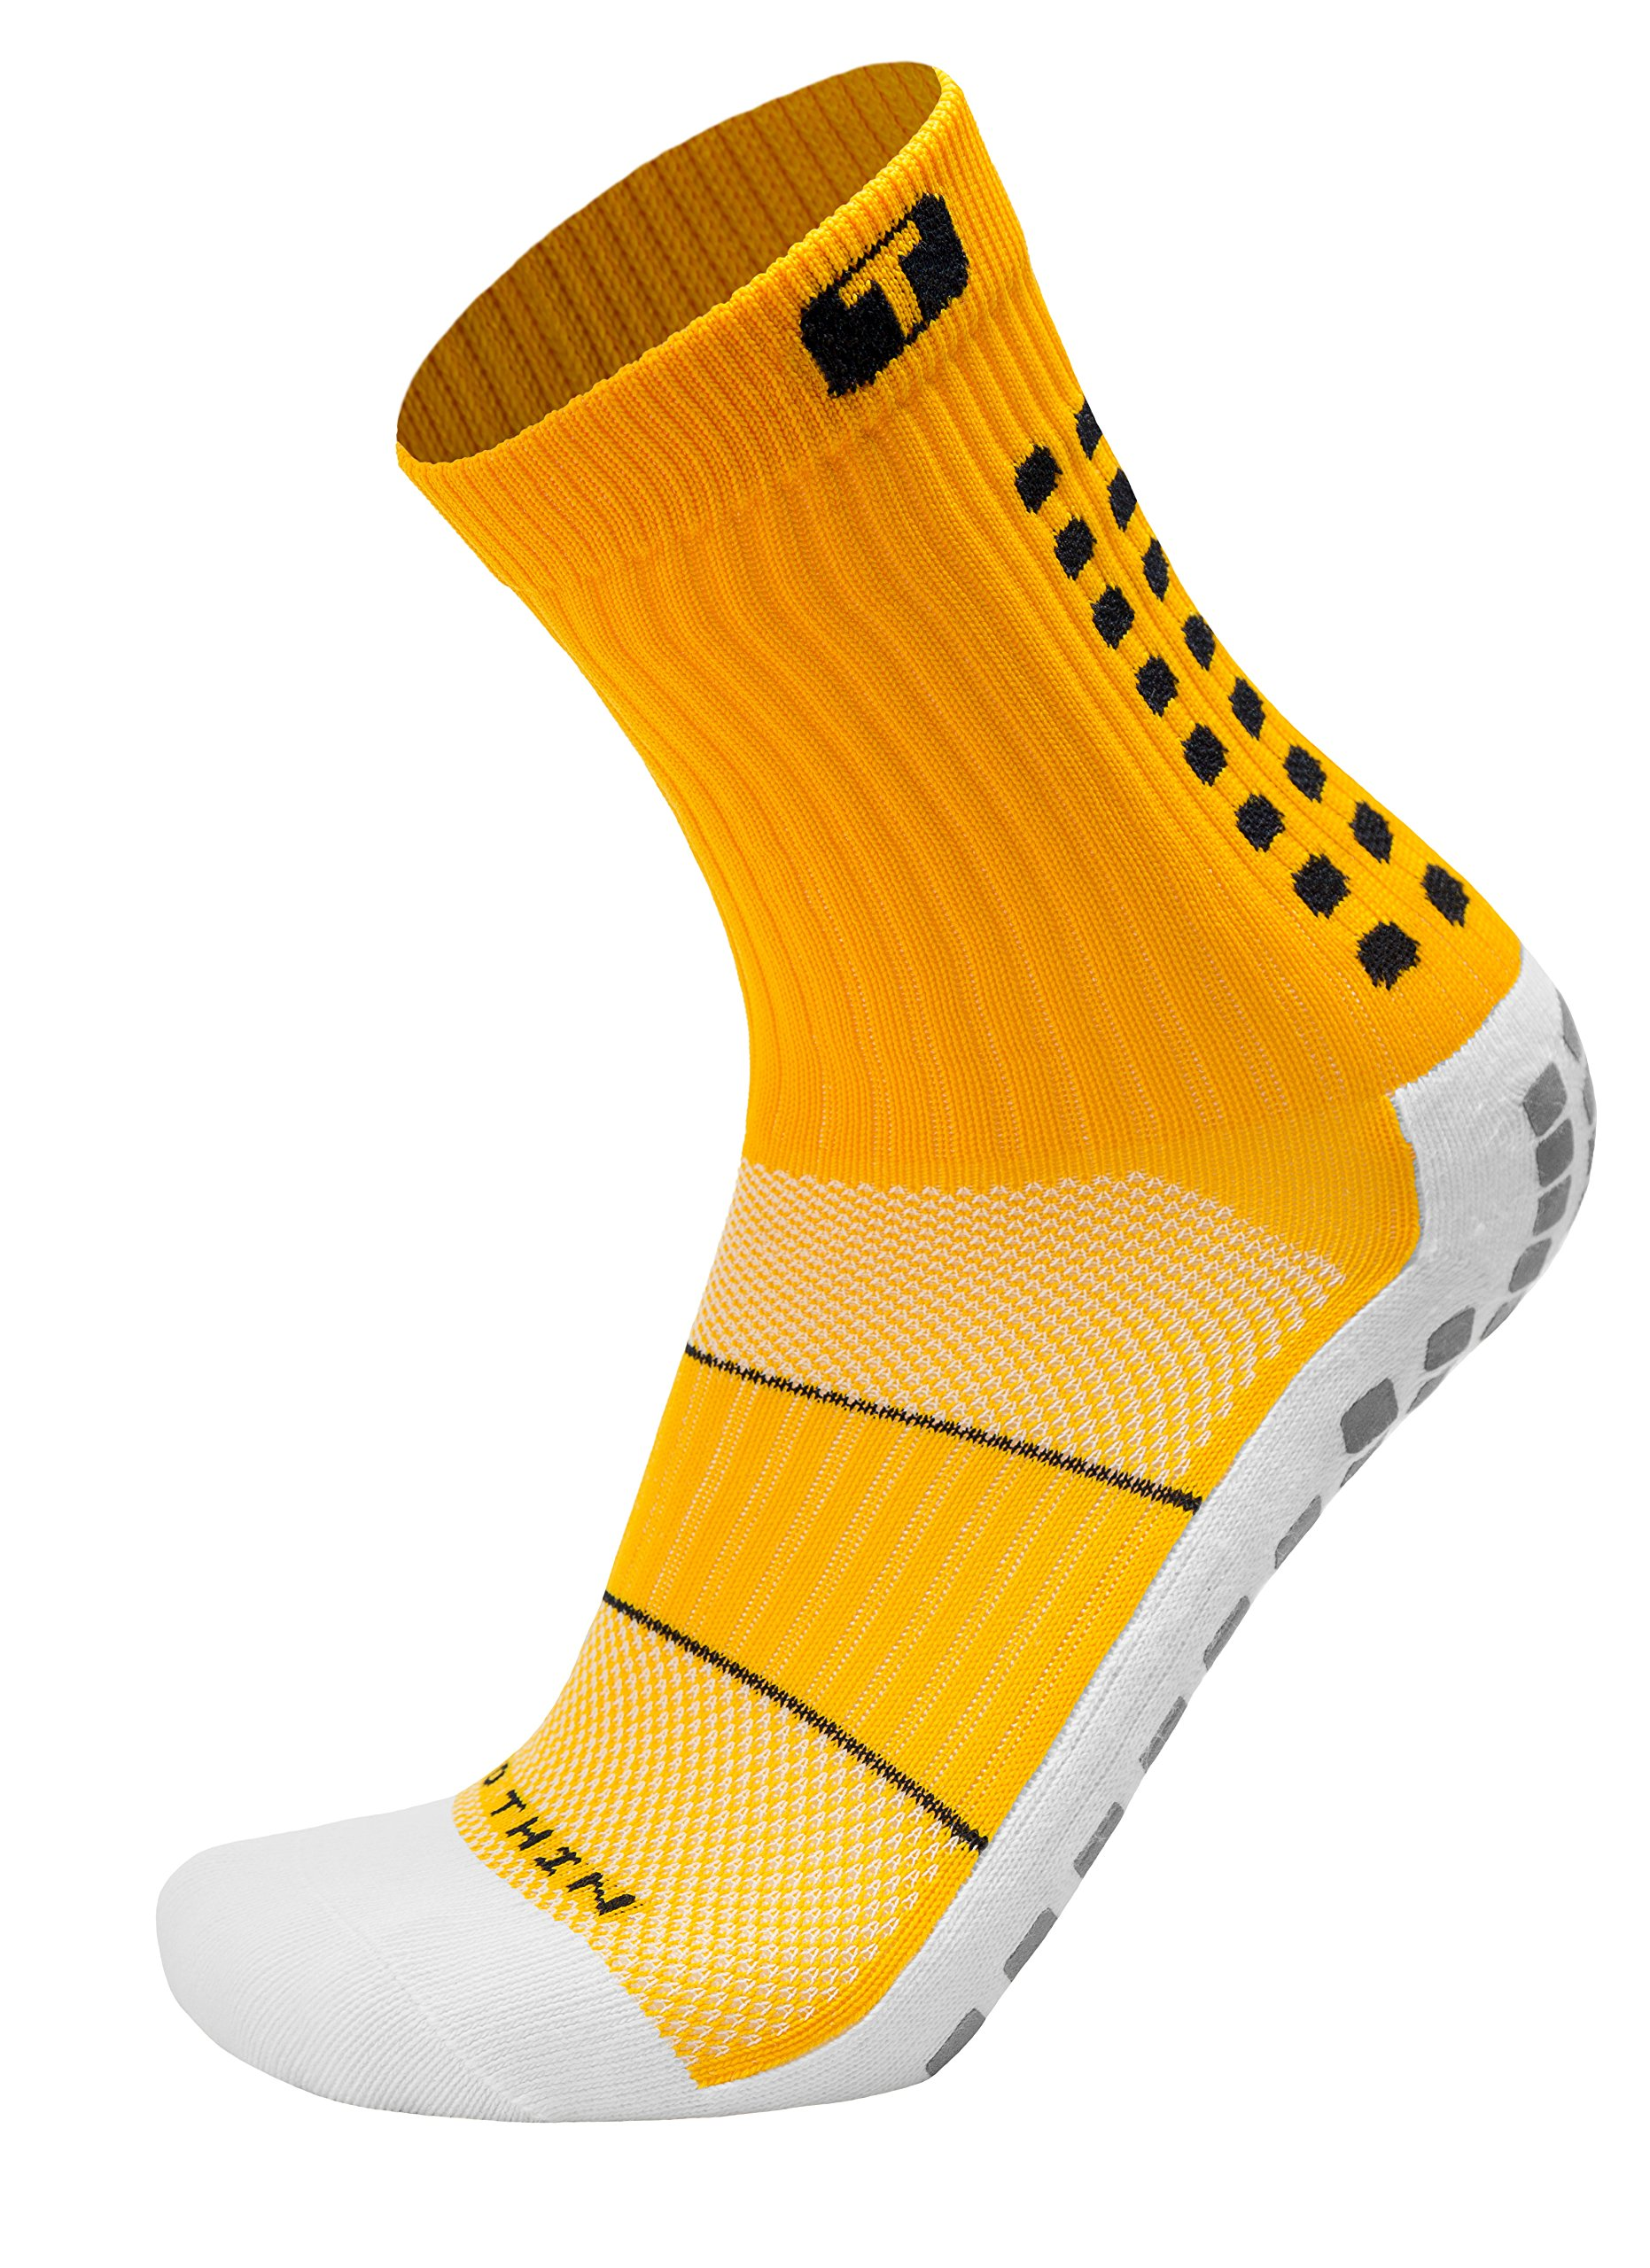 TRUSOX Mid-Calf Crew Thin Soccer   Football Socks (Pair) with Anti Slip Pads To Reduce Blisters, for Men and Women, Yellow, Small, Shoe Size US(M 3-6.5, W 4-7.5)